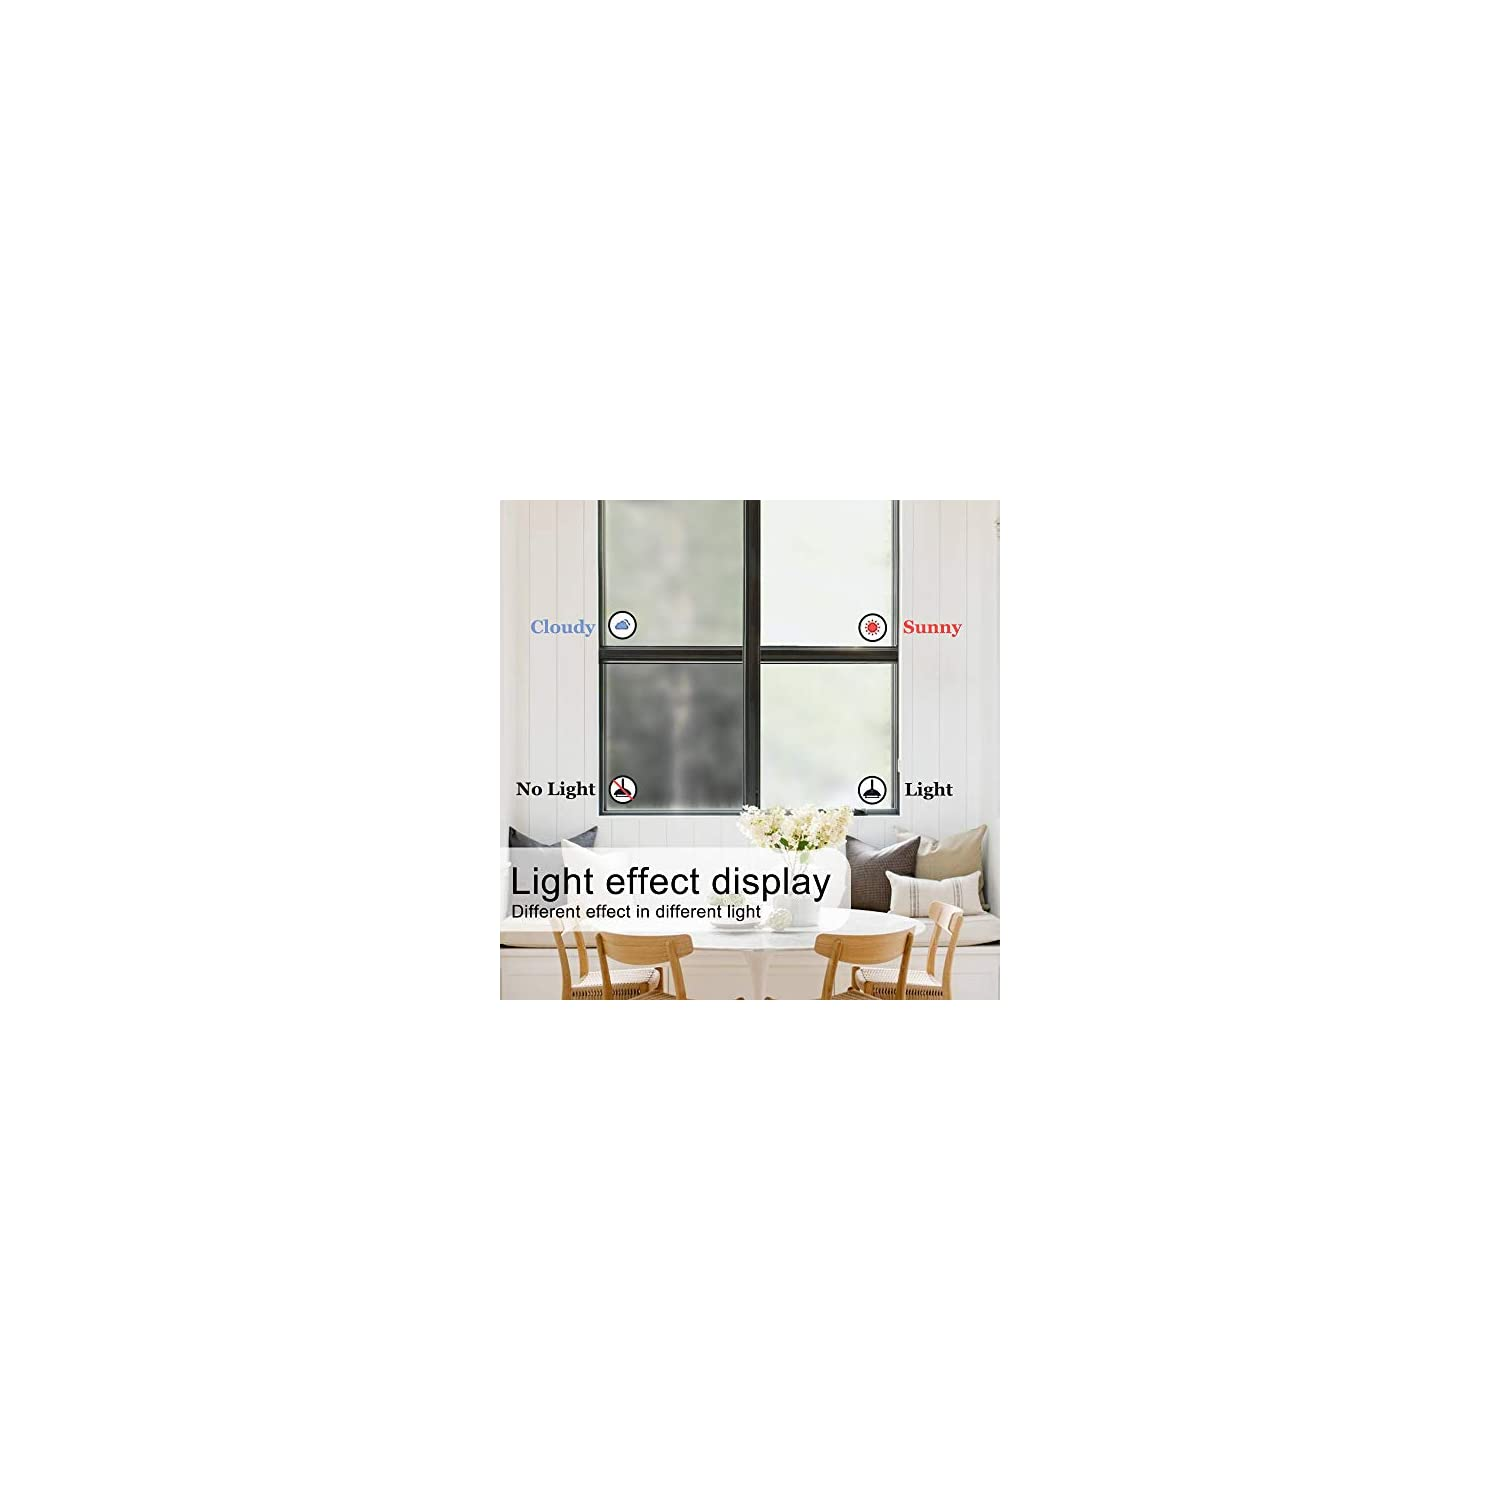 DKTIE Window Privacy Film Non Adhesive Frosted Home Office Film Removable Opaque Window Sticker Self Static Cling Vinly Glass Film for Bathroom (Matte White 35.4by78.7 Inch)